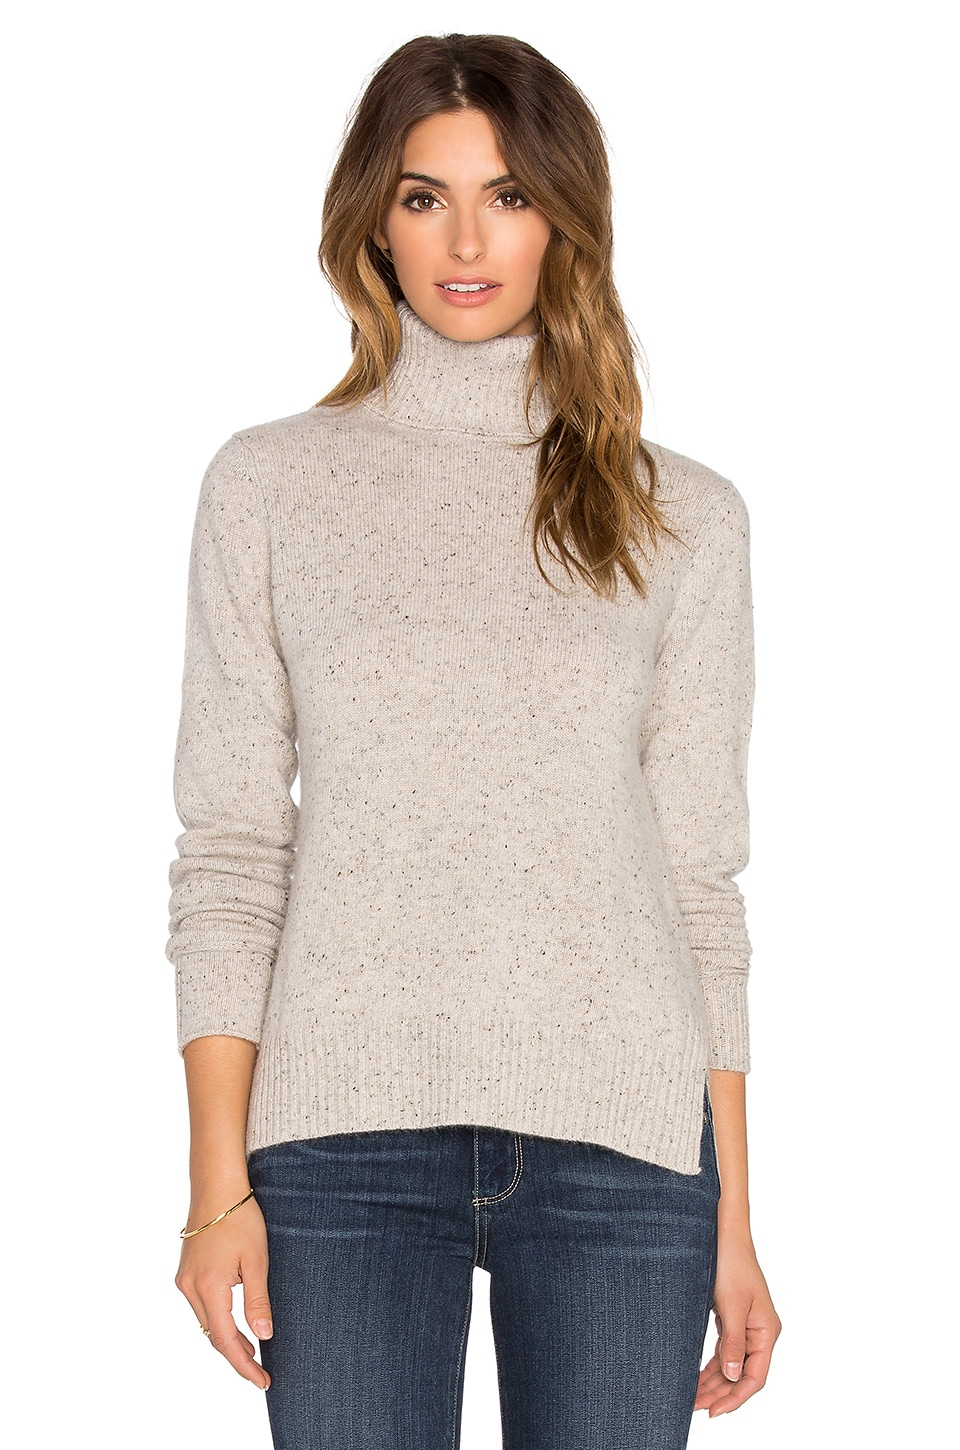 Autumn Cashmere Boxy Slit Turtleneck Sweater in Pebble